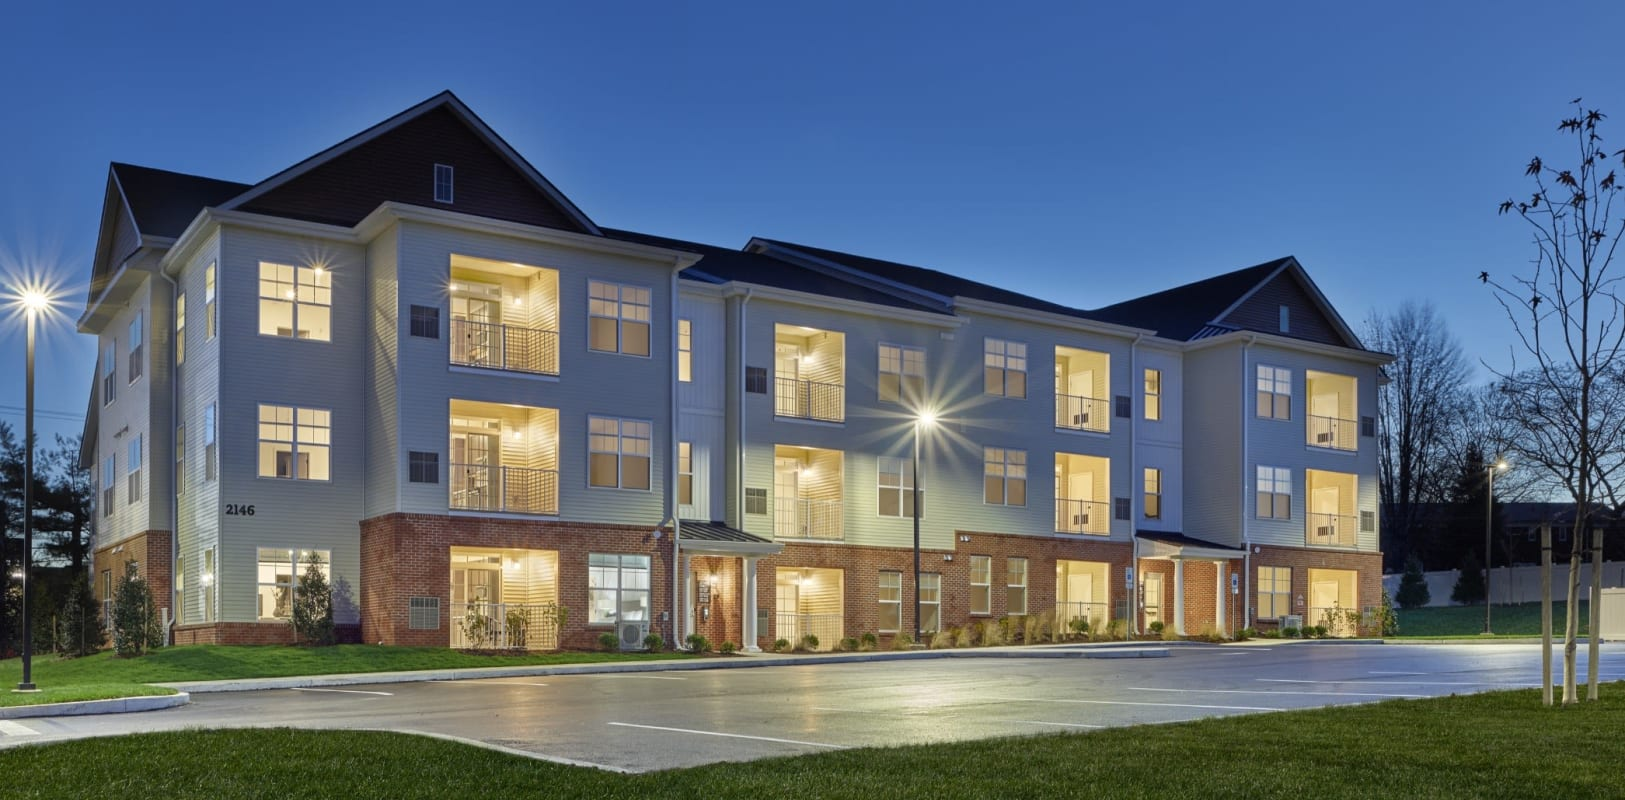 Professionally maintained landscaping and clean sidewalks outside resident buildings at The Mills at Lehigh in Bethlehem, Pennsylvania